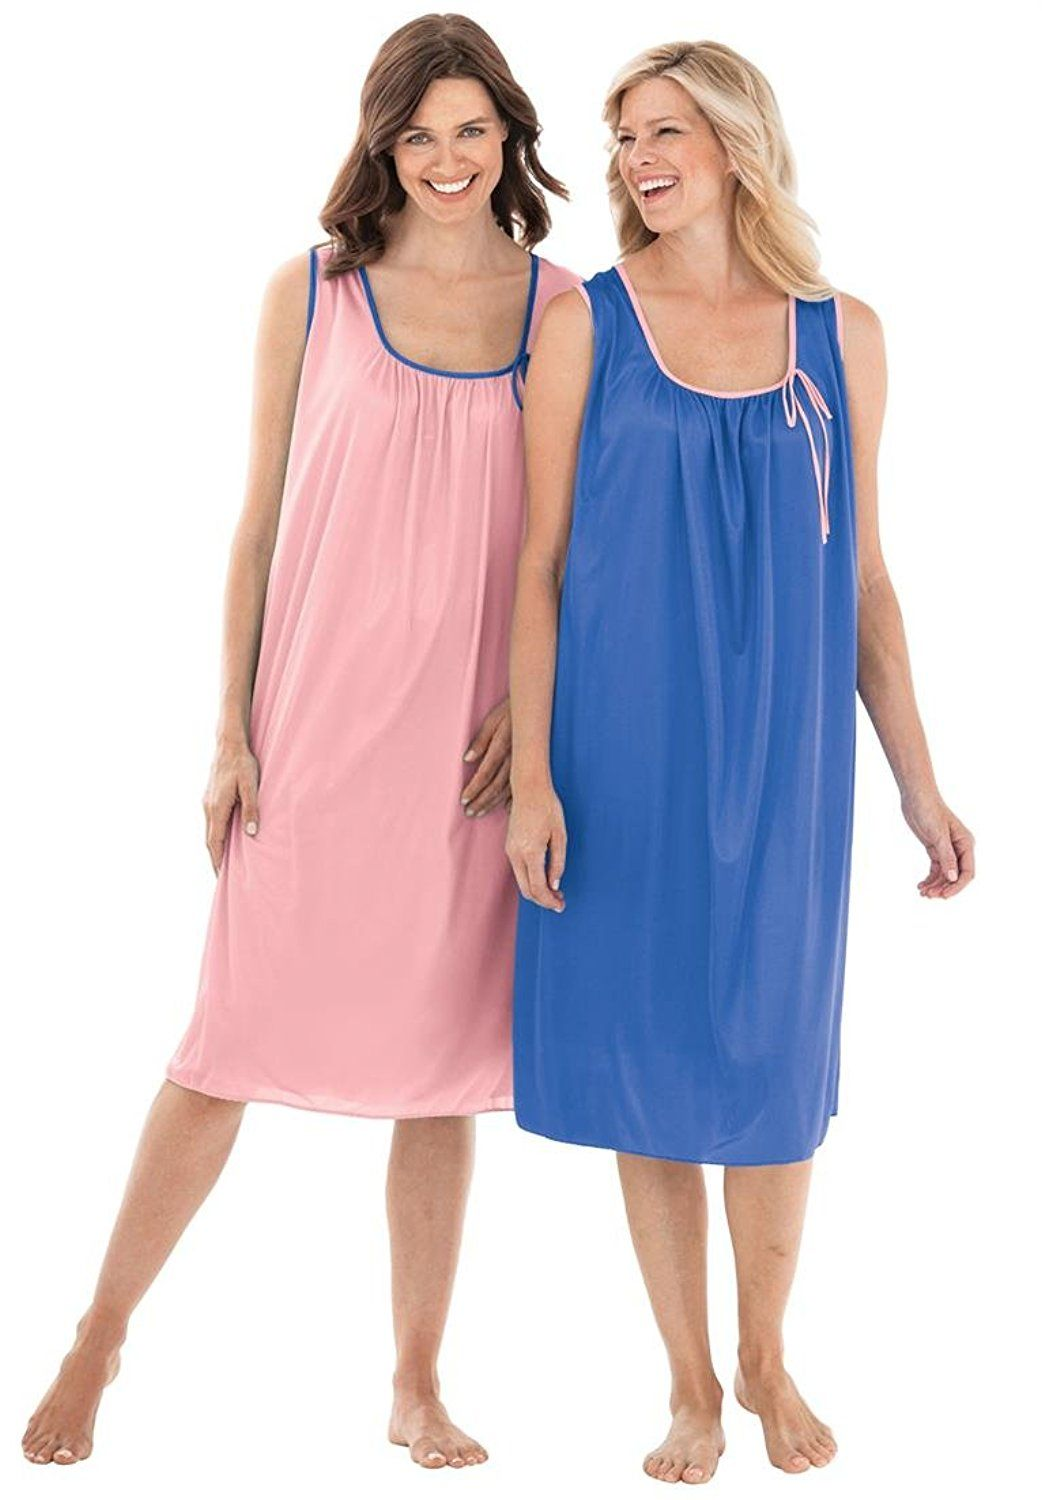 30db6e6761c Only Necessities Women s Plus Size 2-Pack Sleeveless Tricot Night Gown    Special product just for you. See it now!   Plus size tops